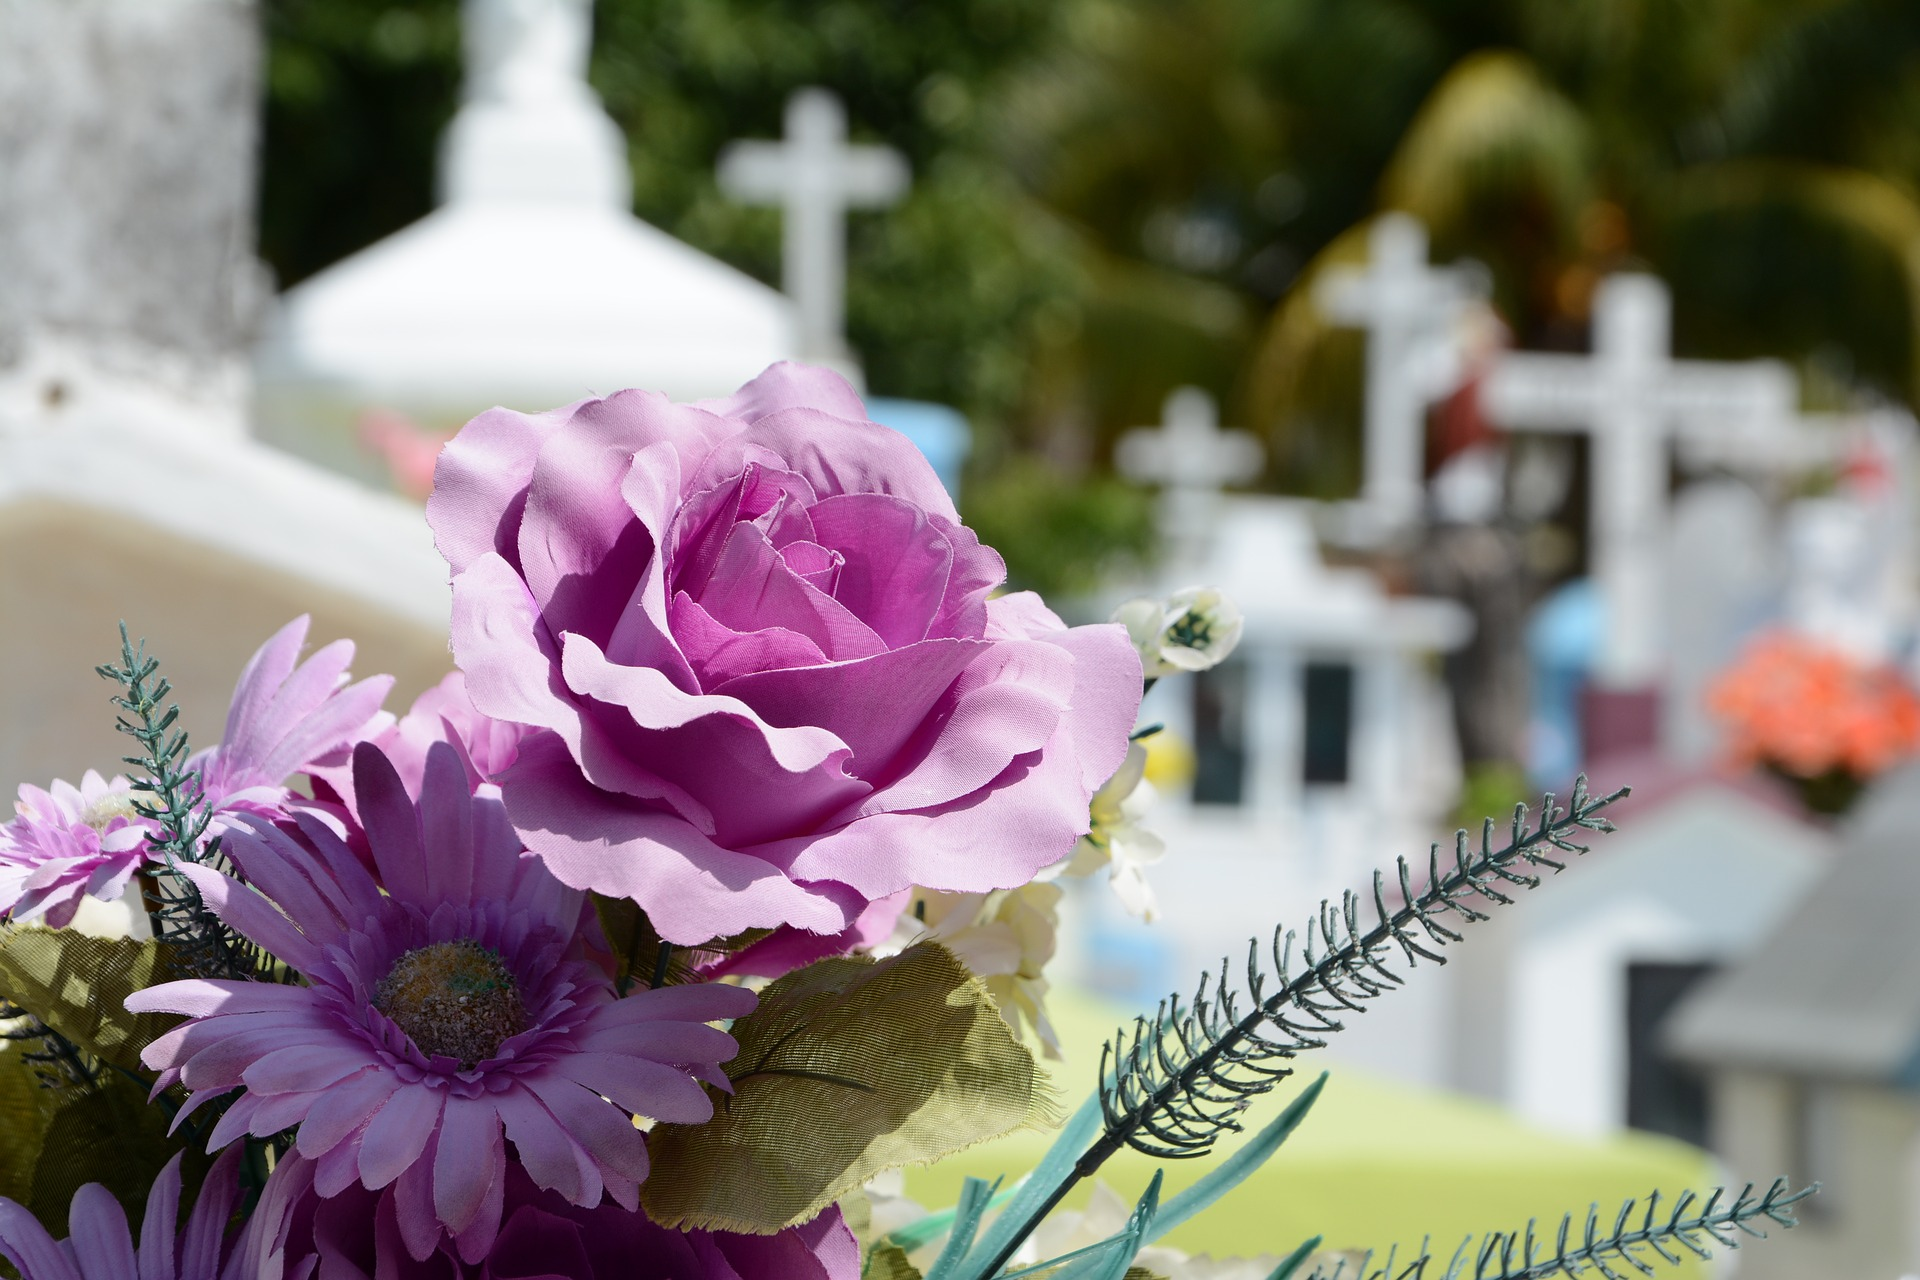 7 Funeral Personalization Ideas Every Family Should Consider